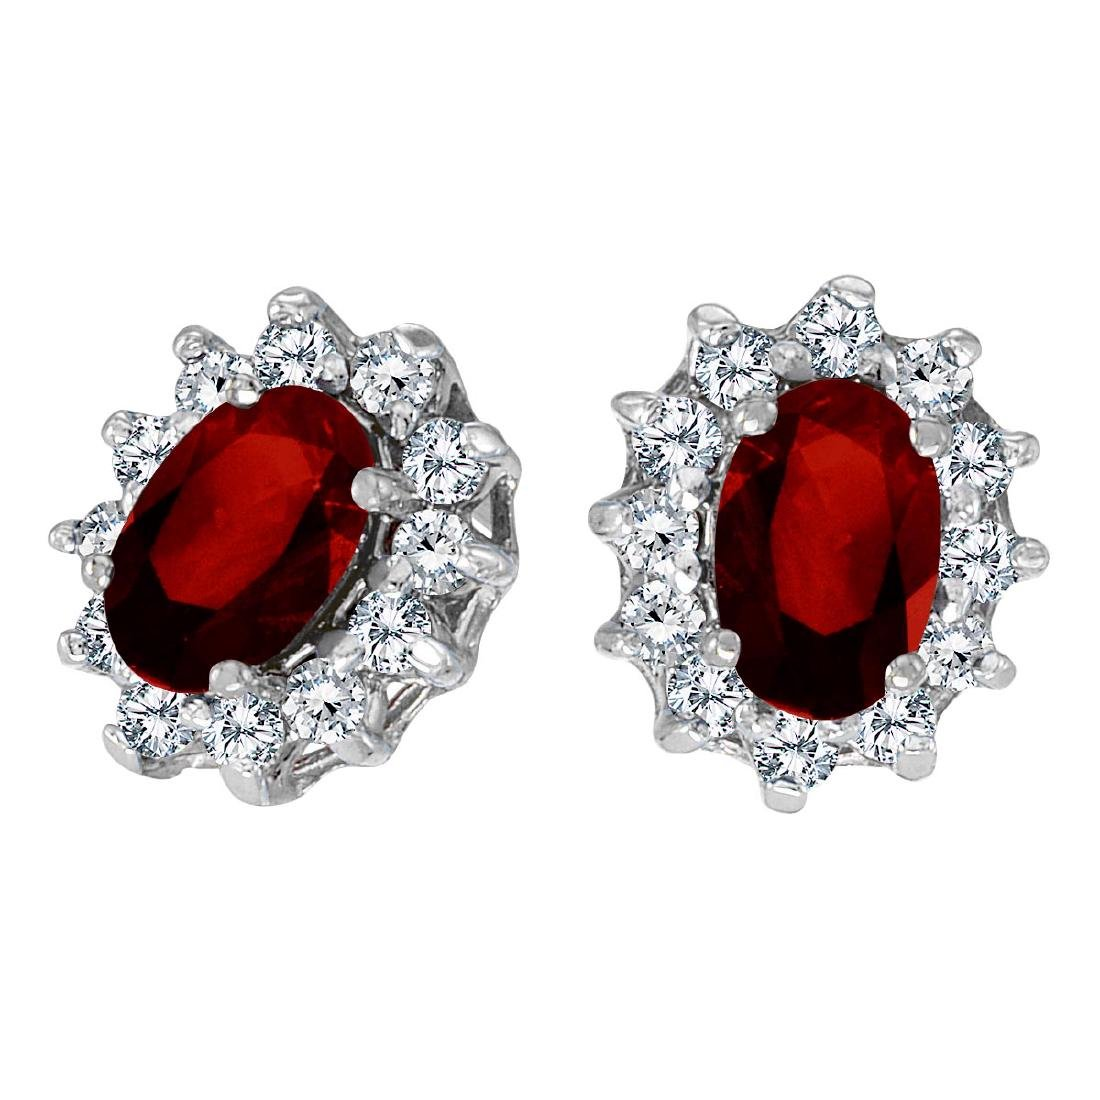 Certified 14k White Gold Oval Garnet and .25 total CTW